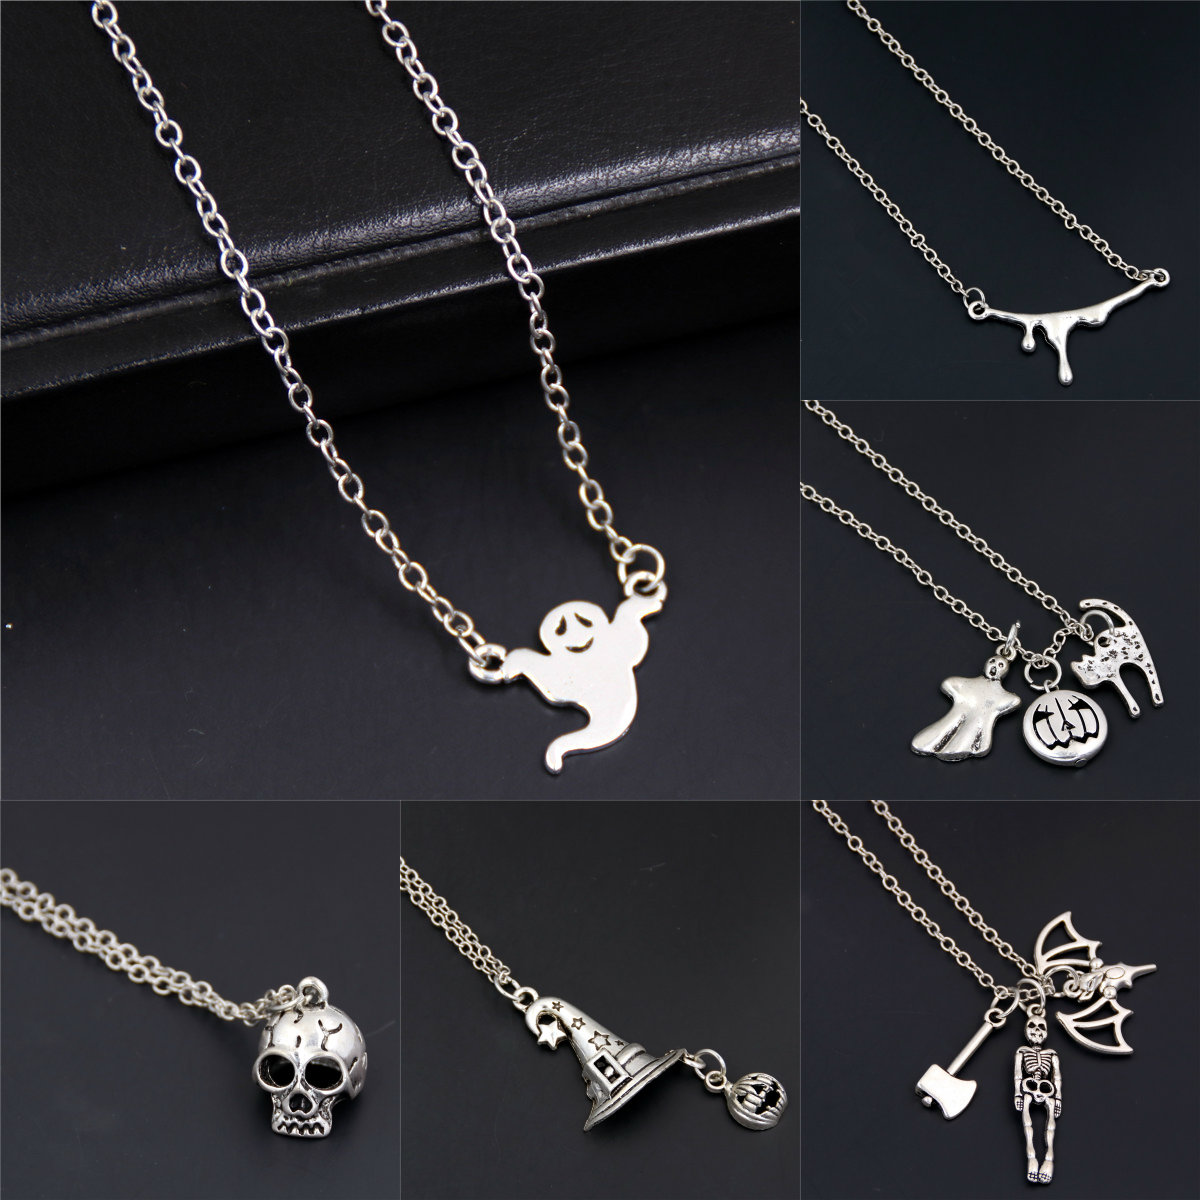 Bat Pendant Necklace Charms Witch-Hat Goth Jewelry Skull Gift Halloween Women for Festival